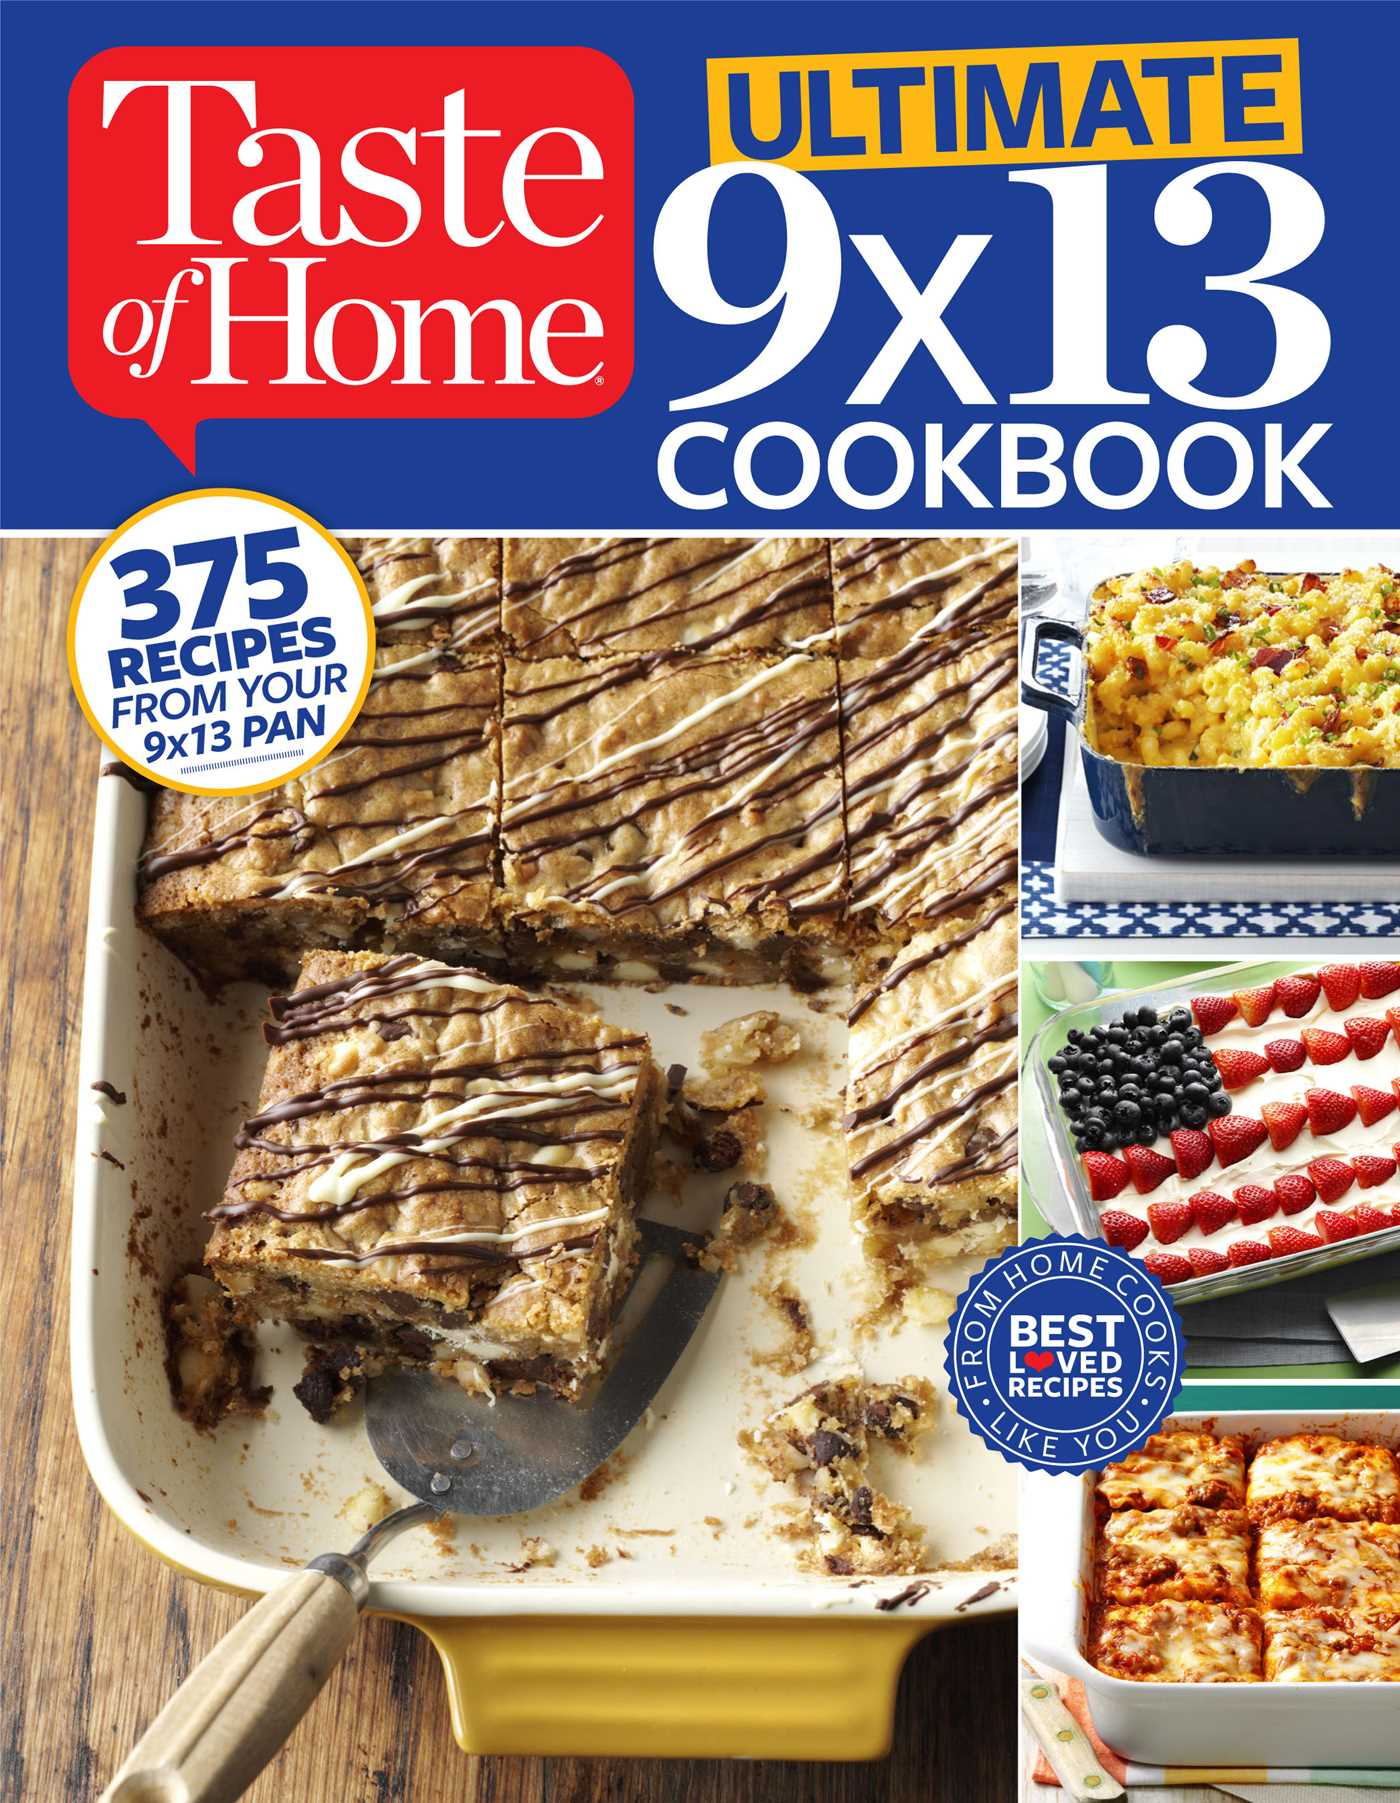 Taste of home ultimate 9 x 13 cookbook book by taste of home taste taste of home ultimate 9 x 13 cookbook 9781617654206 hr forumfinder Choice Image